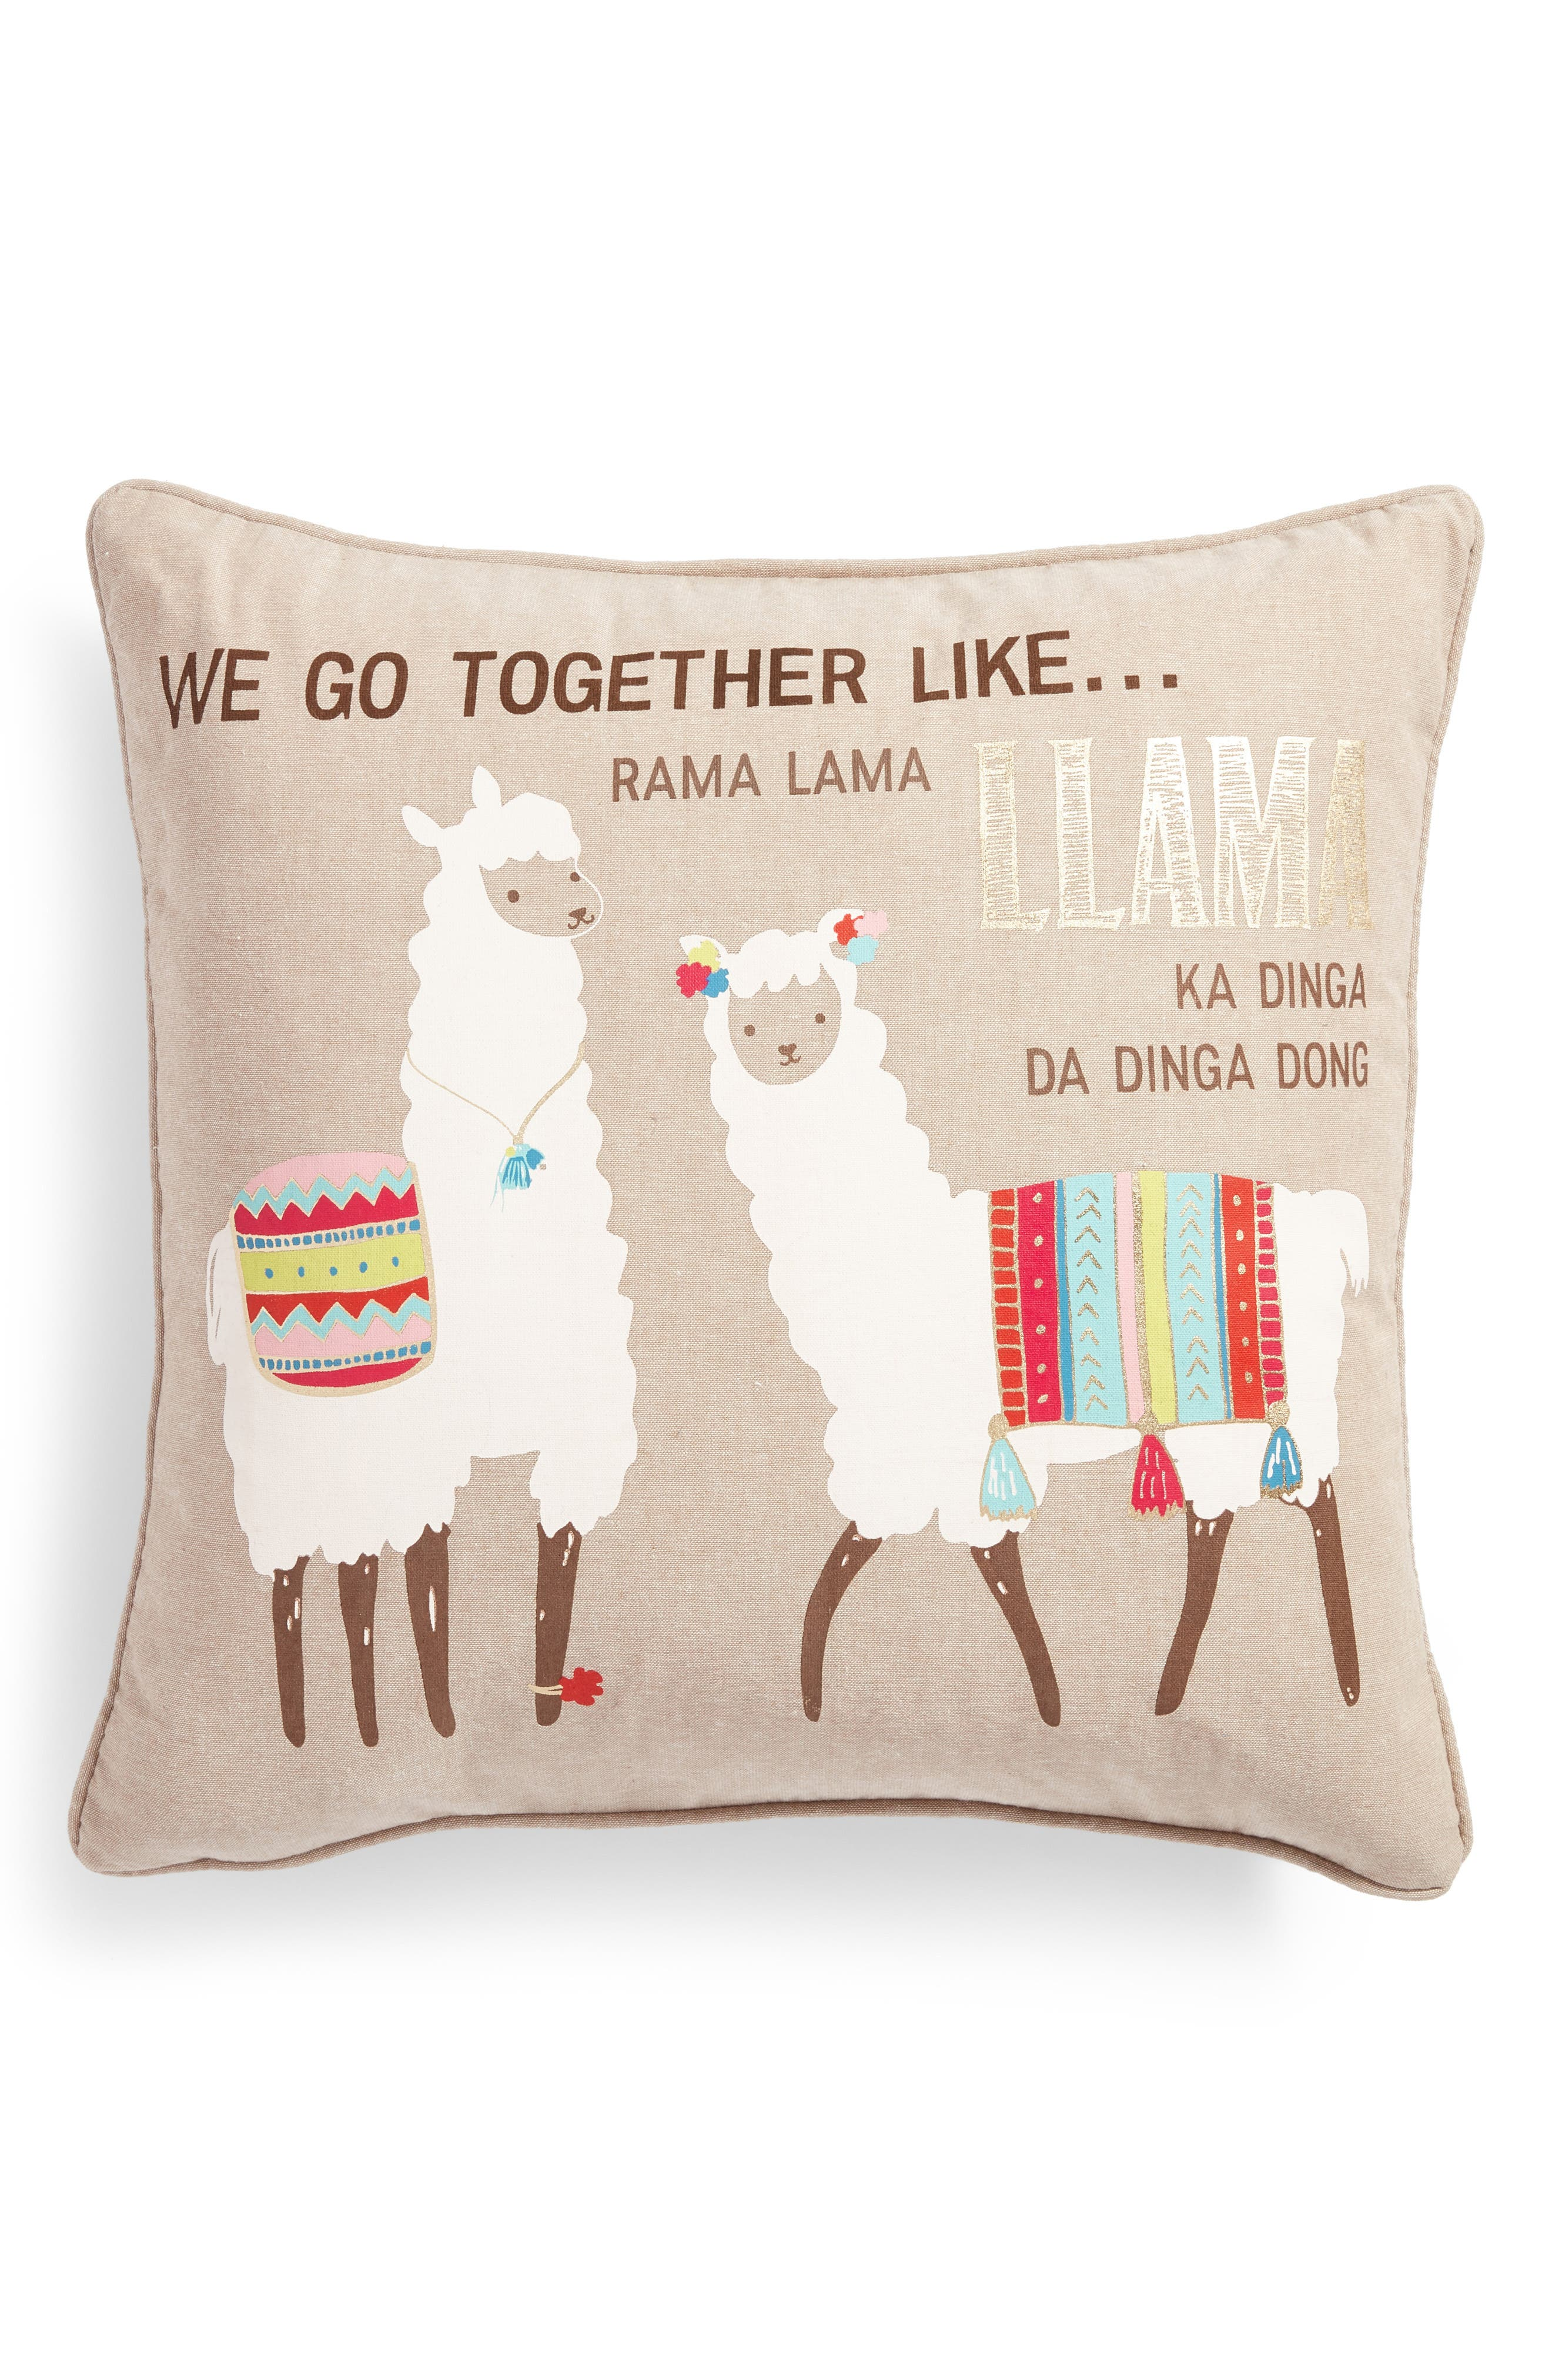 We Go Together Accent Pillow,                             Main thumbnail 1, color,                             251